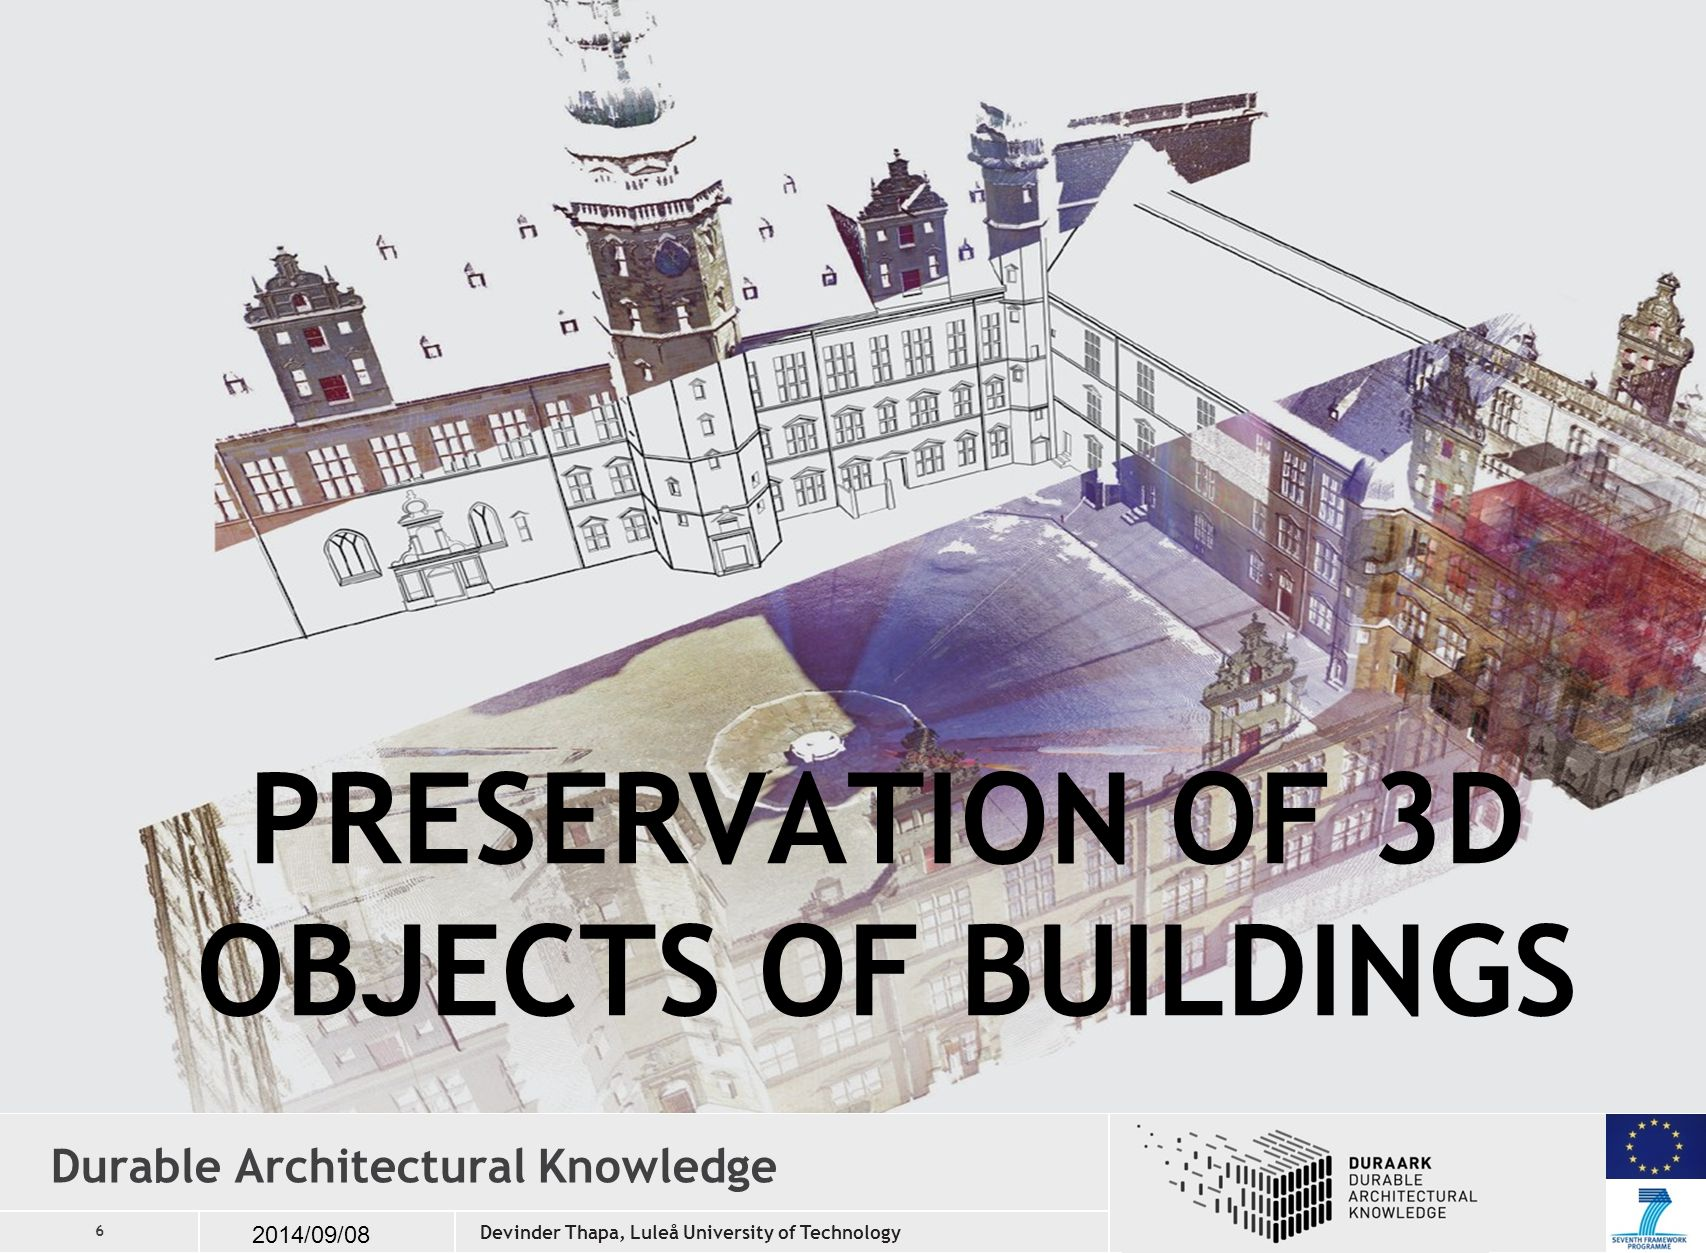 6 2014/09/08 Durable Architectural Knowledge PRESERVATION OF 3D OBJECTS OF BUILDINGS Devinder Thapa, Luleå University of Technology